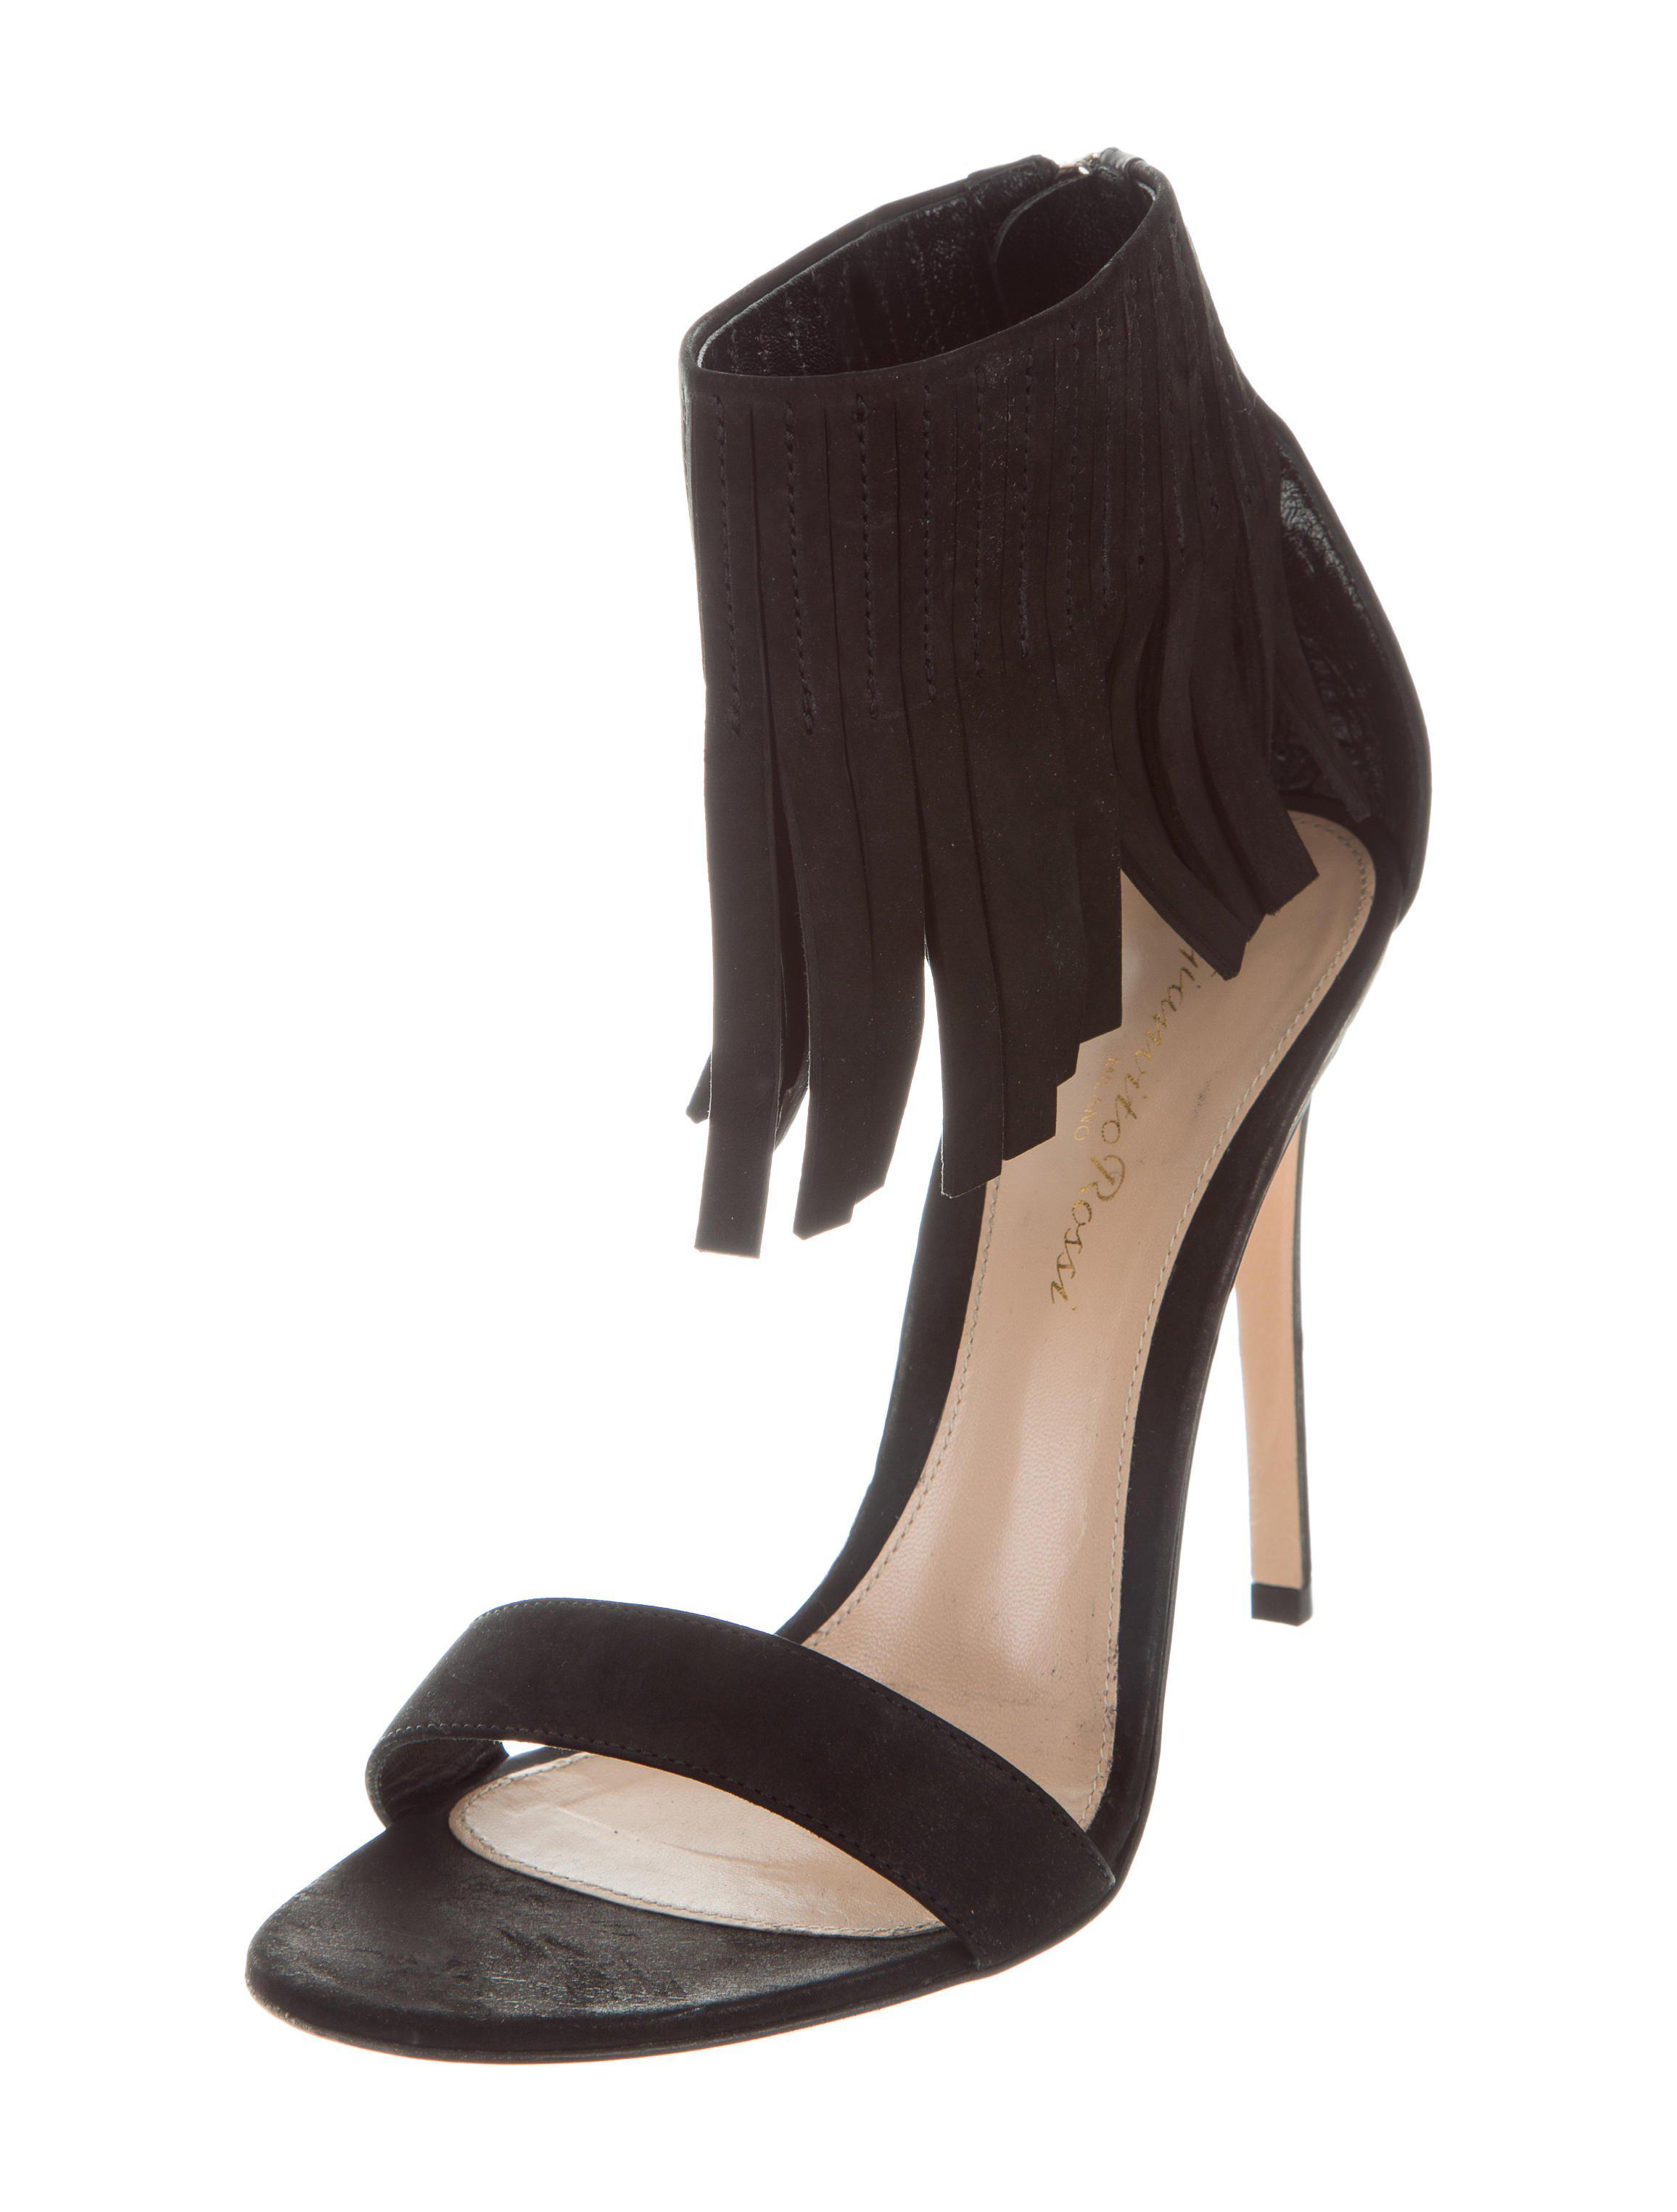 outlet low shipping fee free shipping cheapest price Gianvito Rossi Nubuck Fringe Sandals BCUfhis